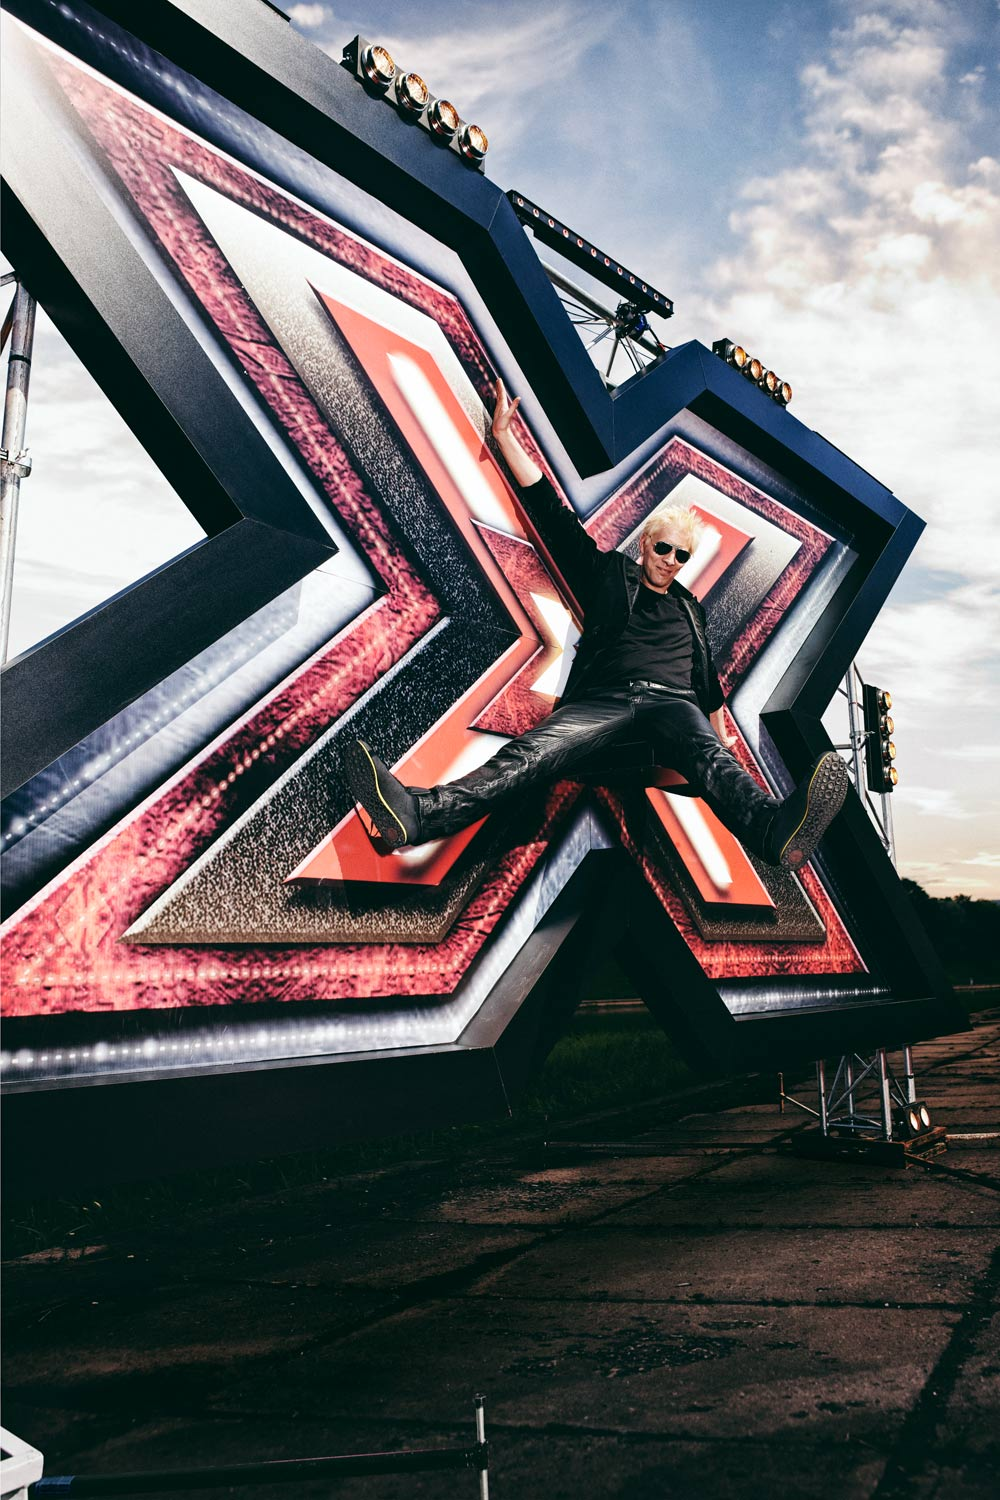 <p>Tv3 television<br /> The X Factor<br /> Lithuania<br /> 2012 </p>